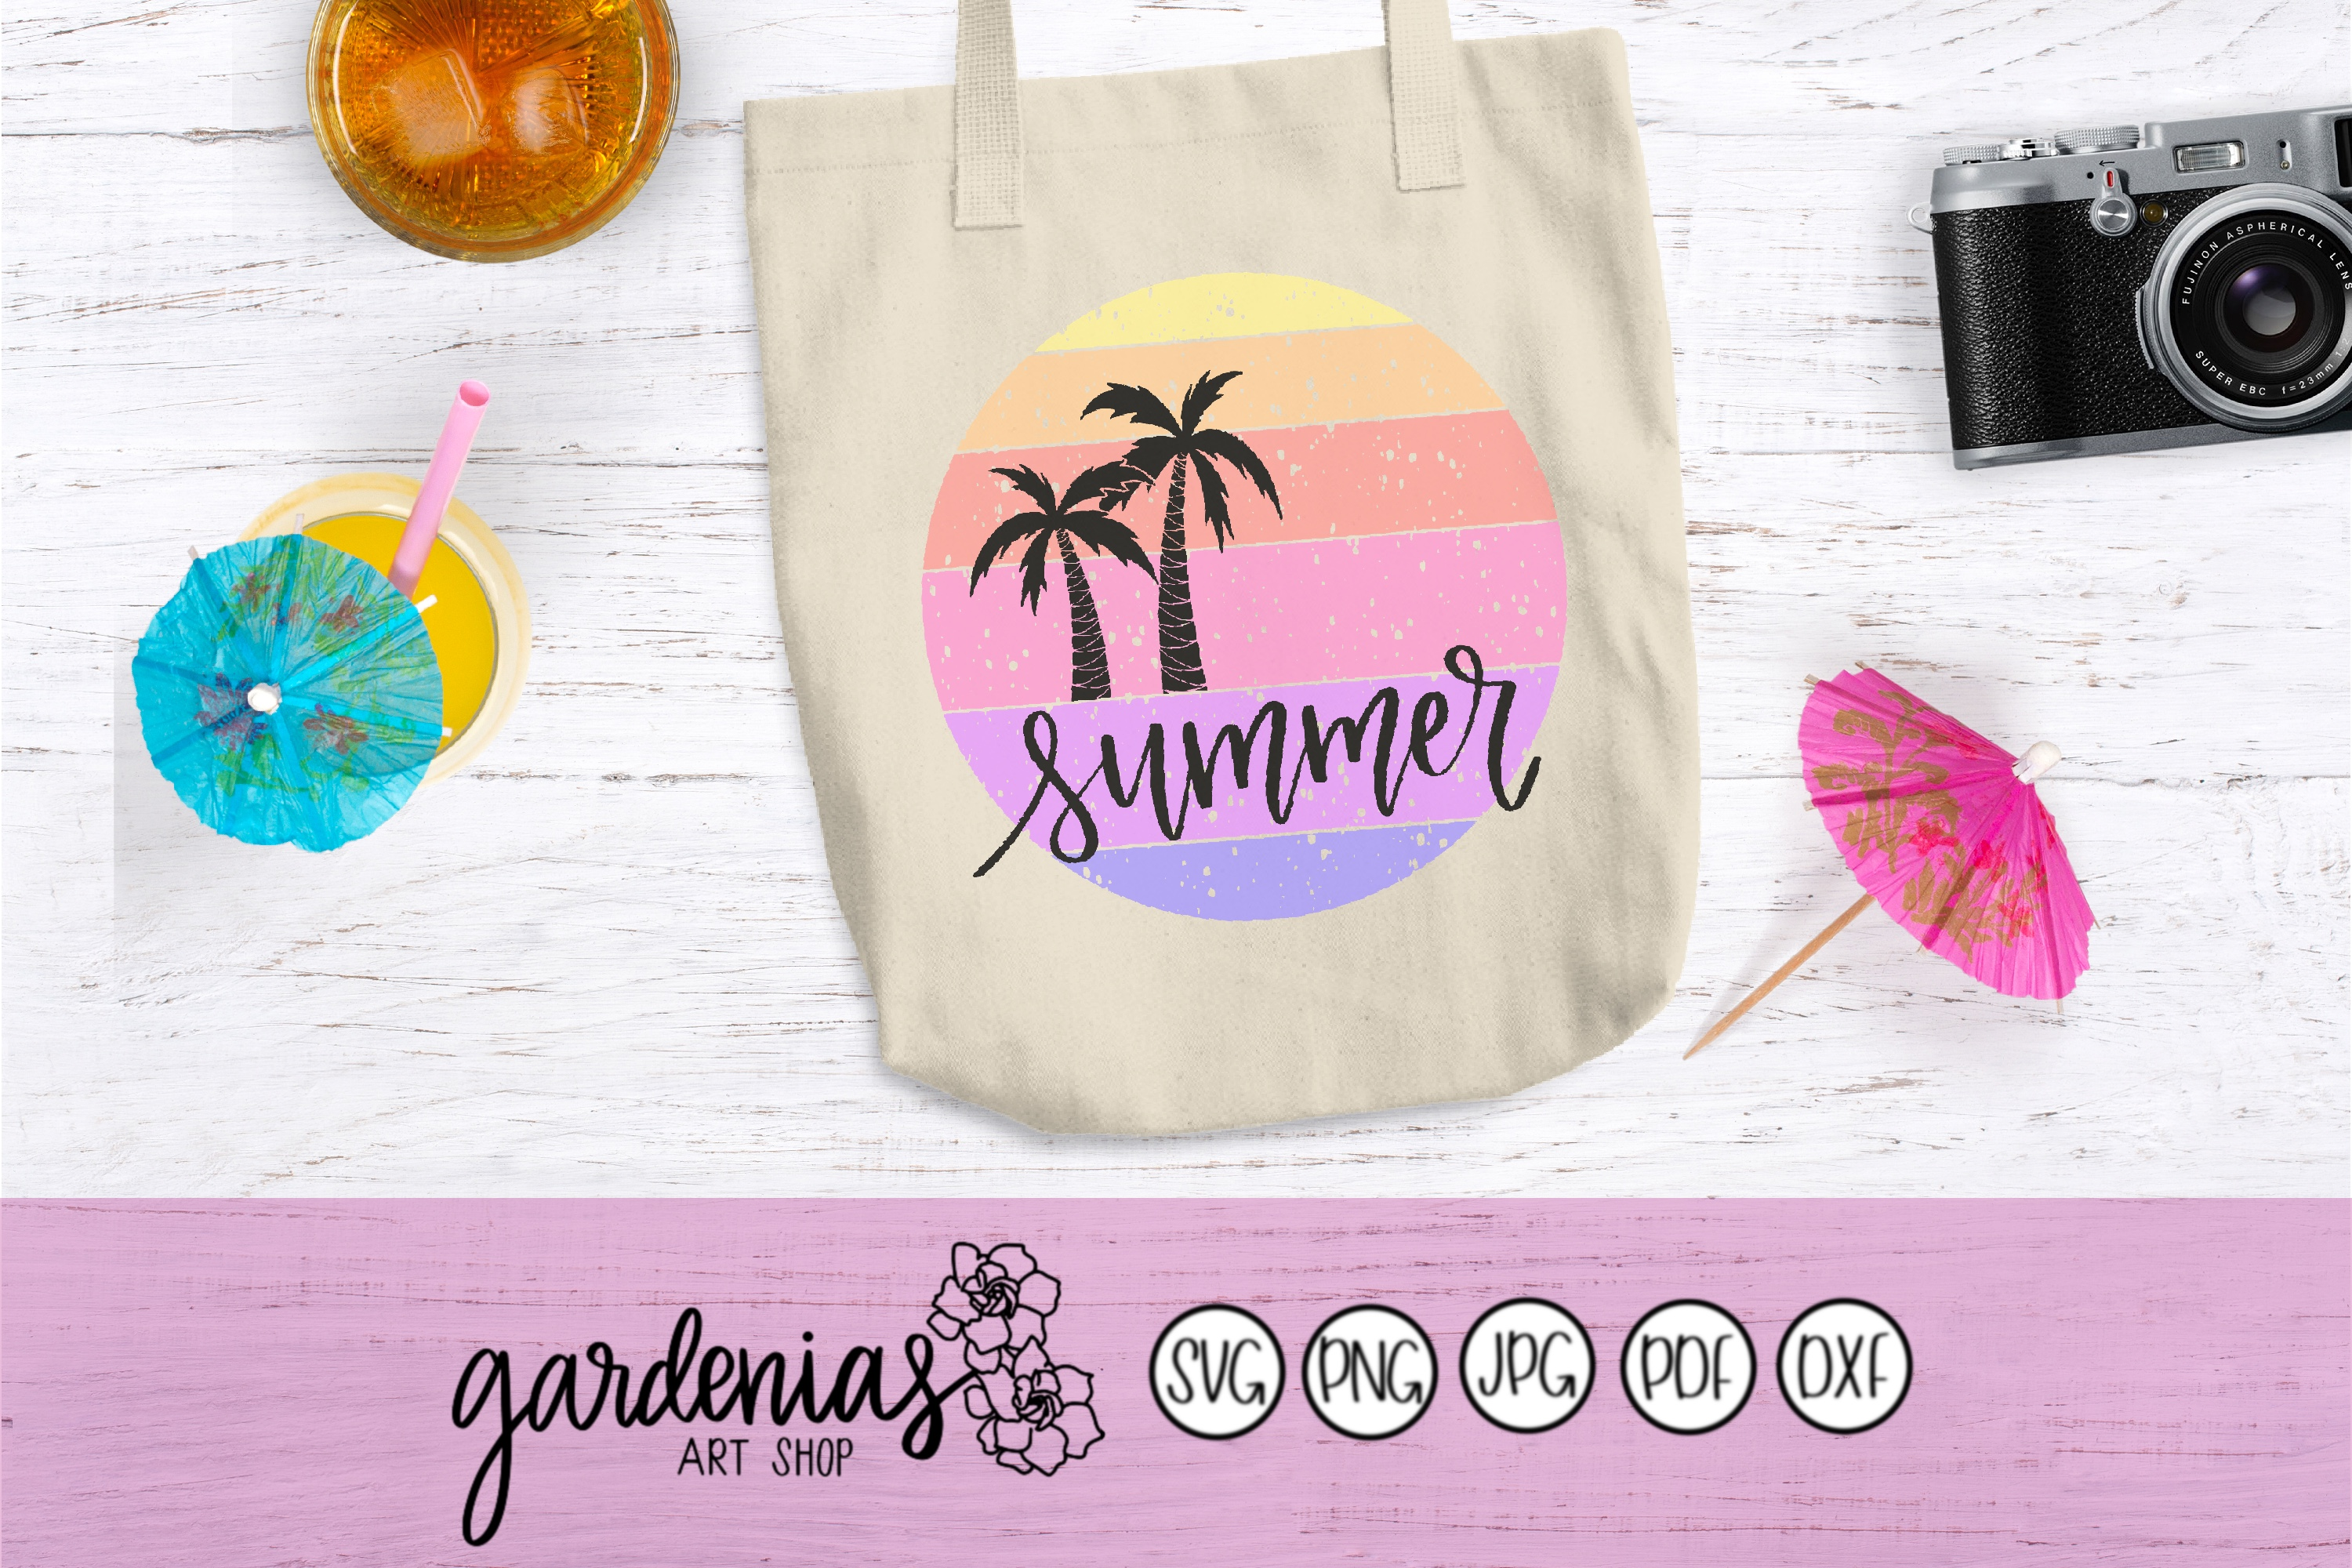 Summer SVG | Palm Trees SVG| Distressed | Circle | Textured example image 3